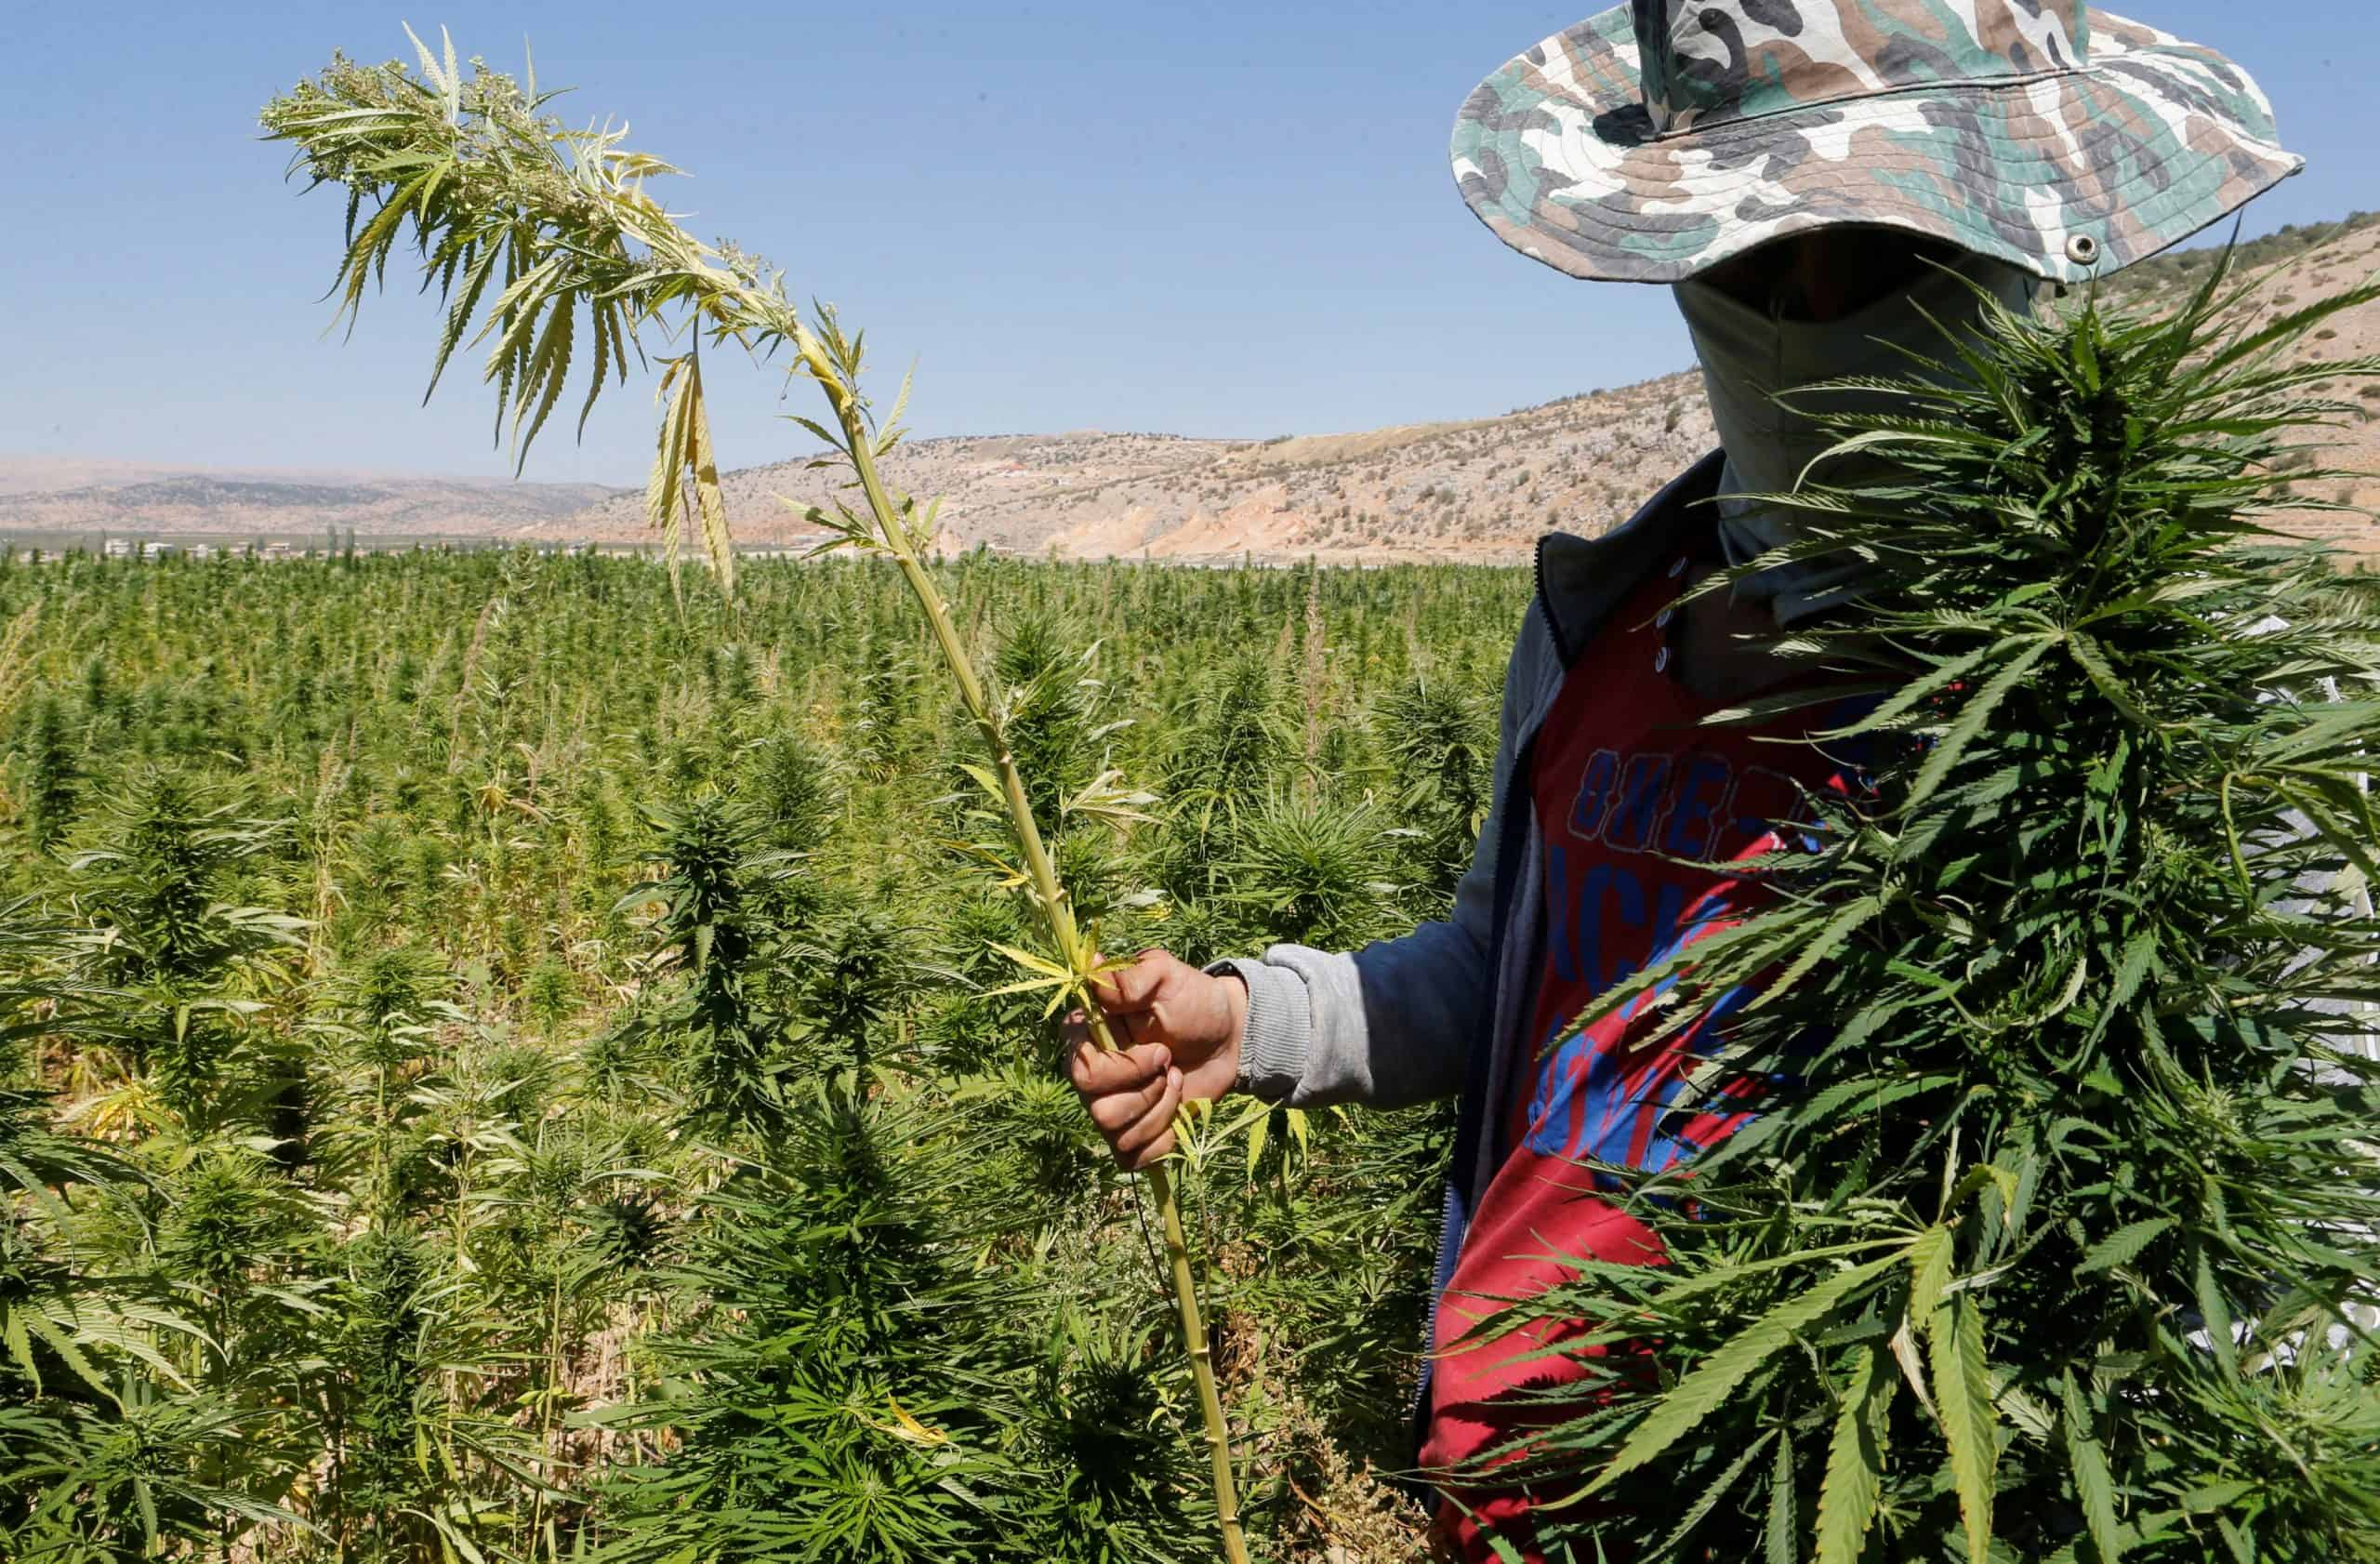 Risks and Opportunities of Medical and Industrial Cannabis legalization in Lebanon